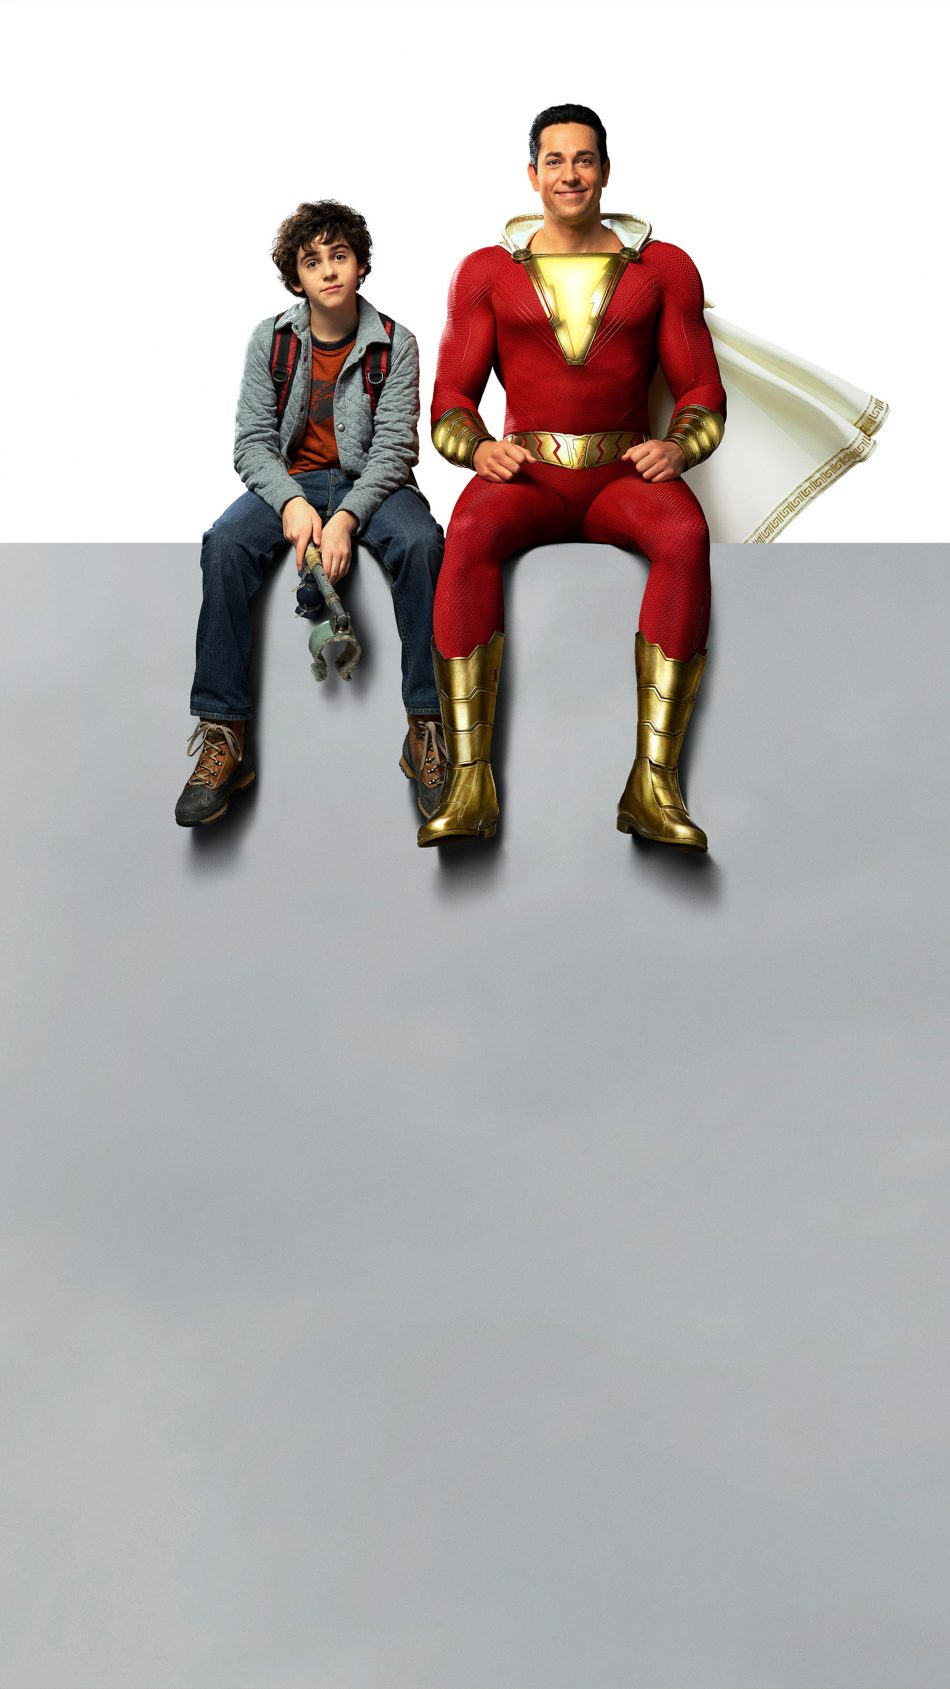 Zachary Levi & Asher Angel In Shazam! 4K Ultra HD Mobile Wallpaper